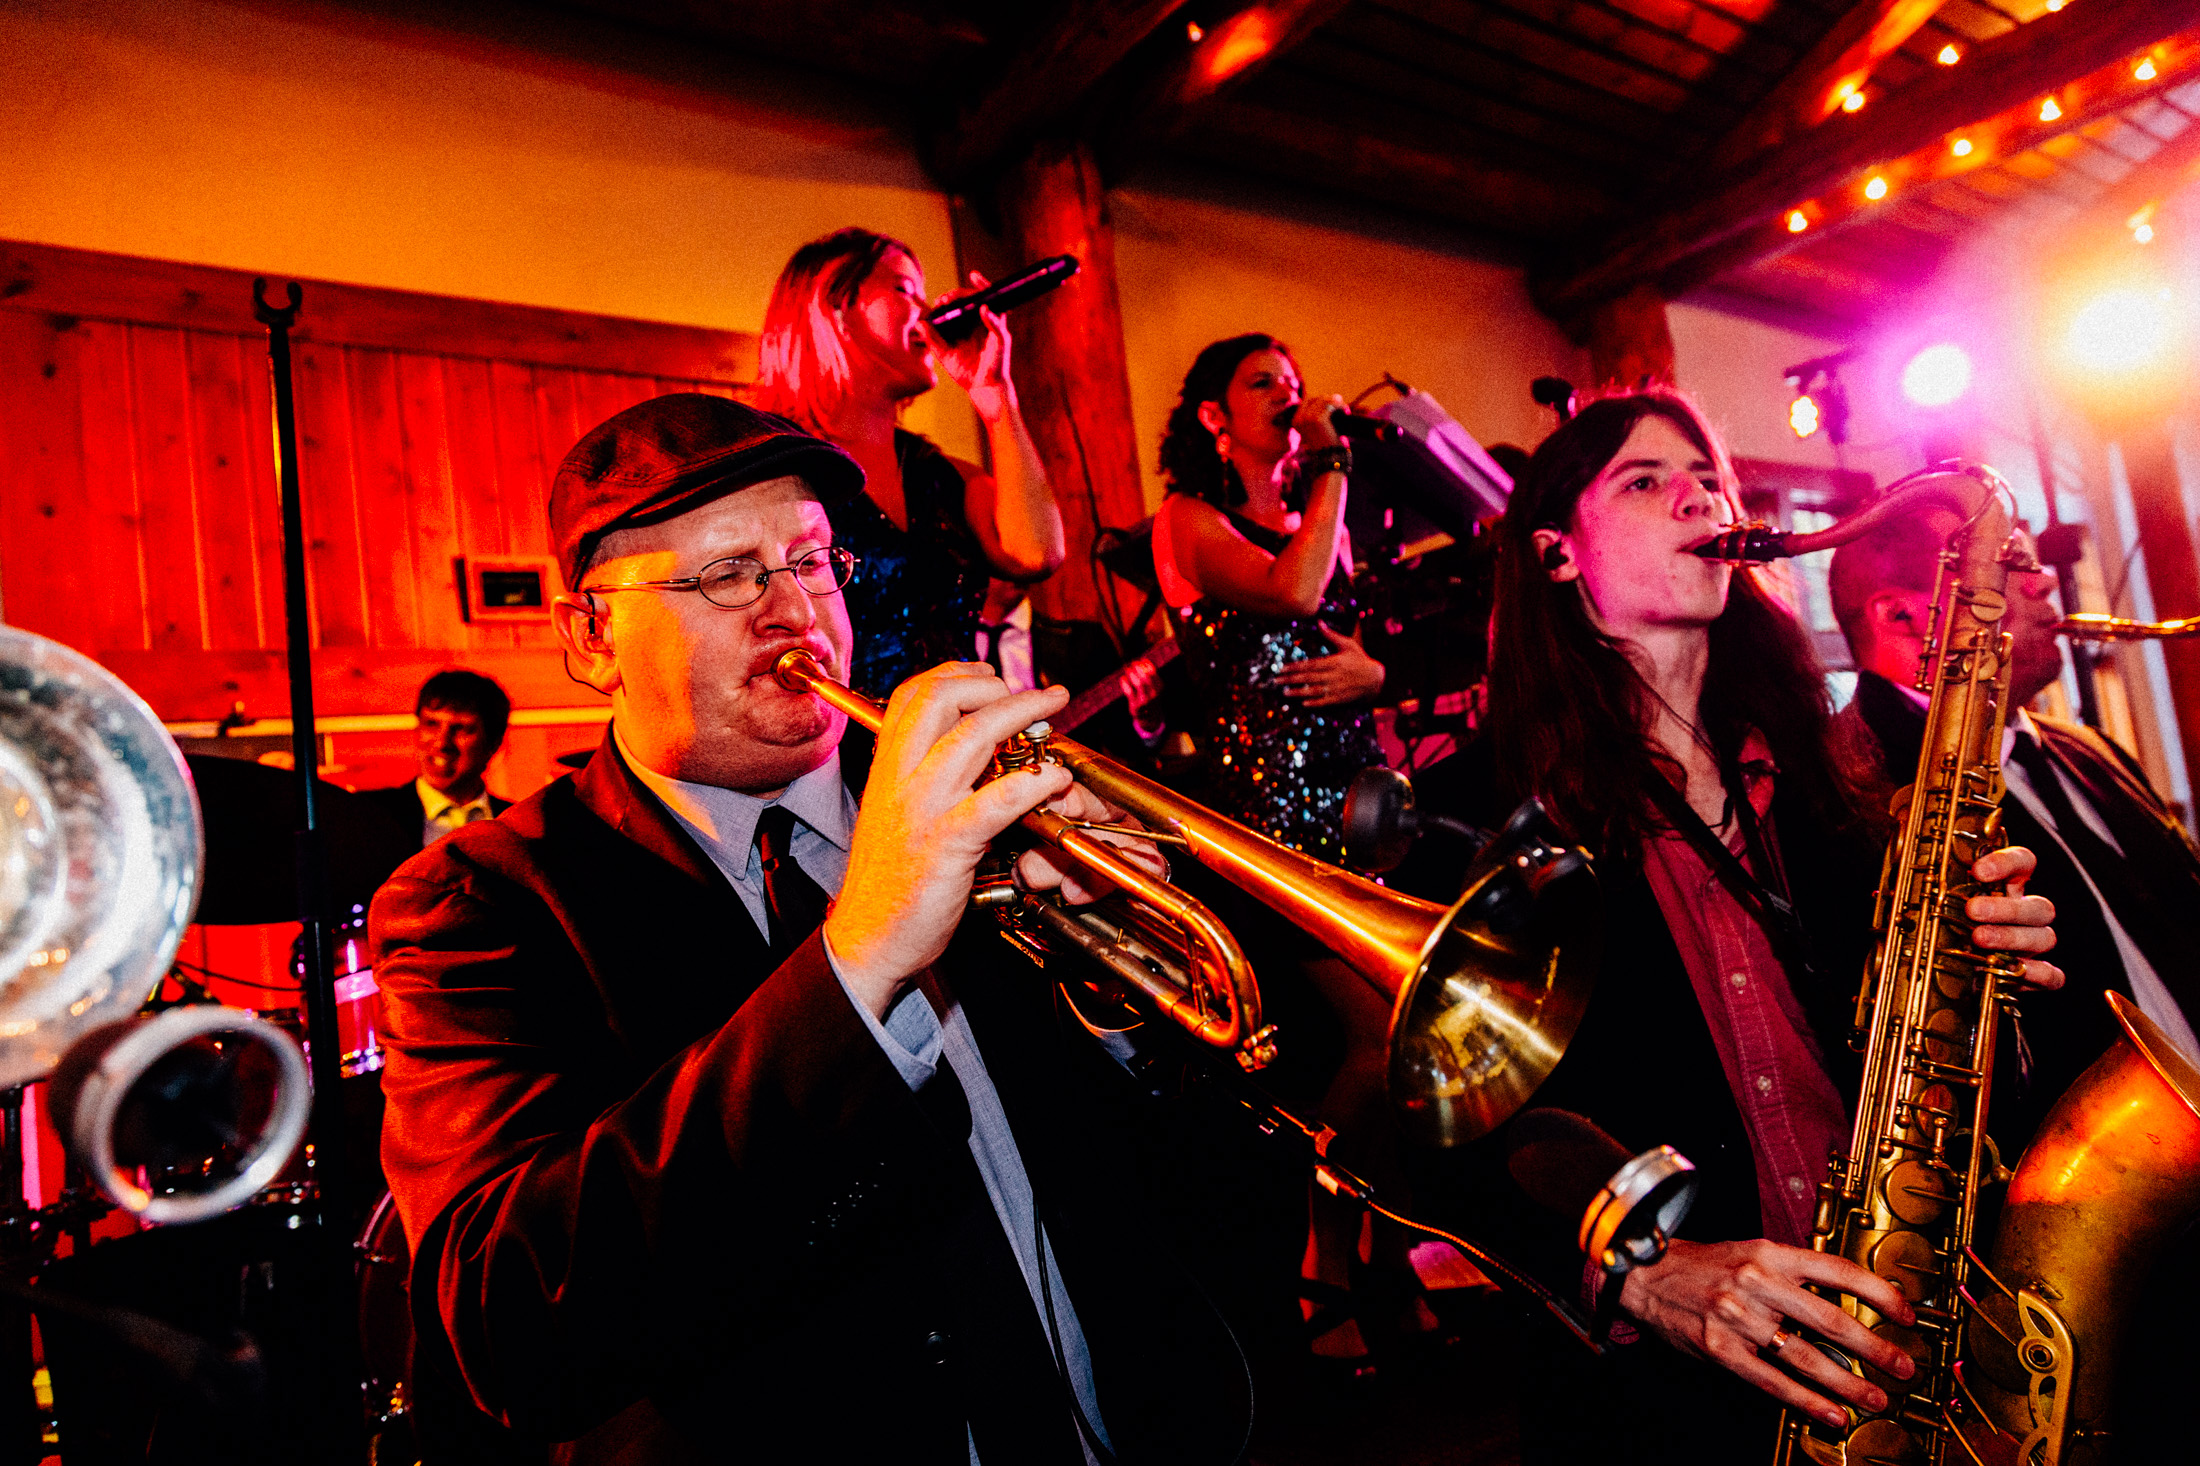 Horn section of wedding band Funkiphino.